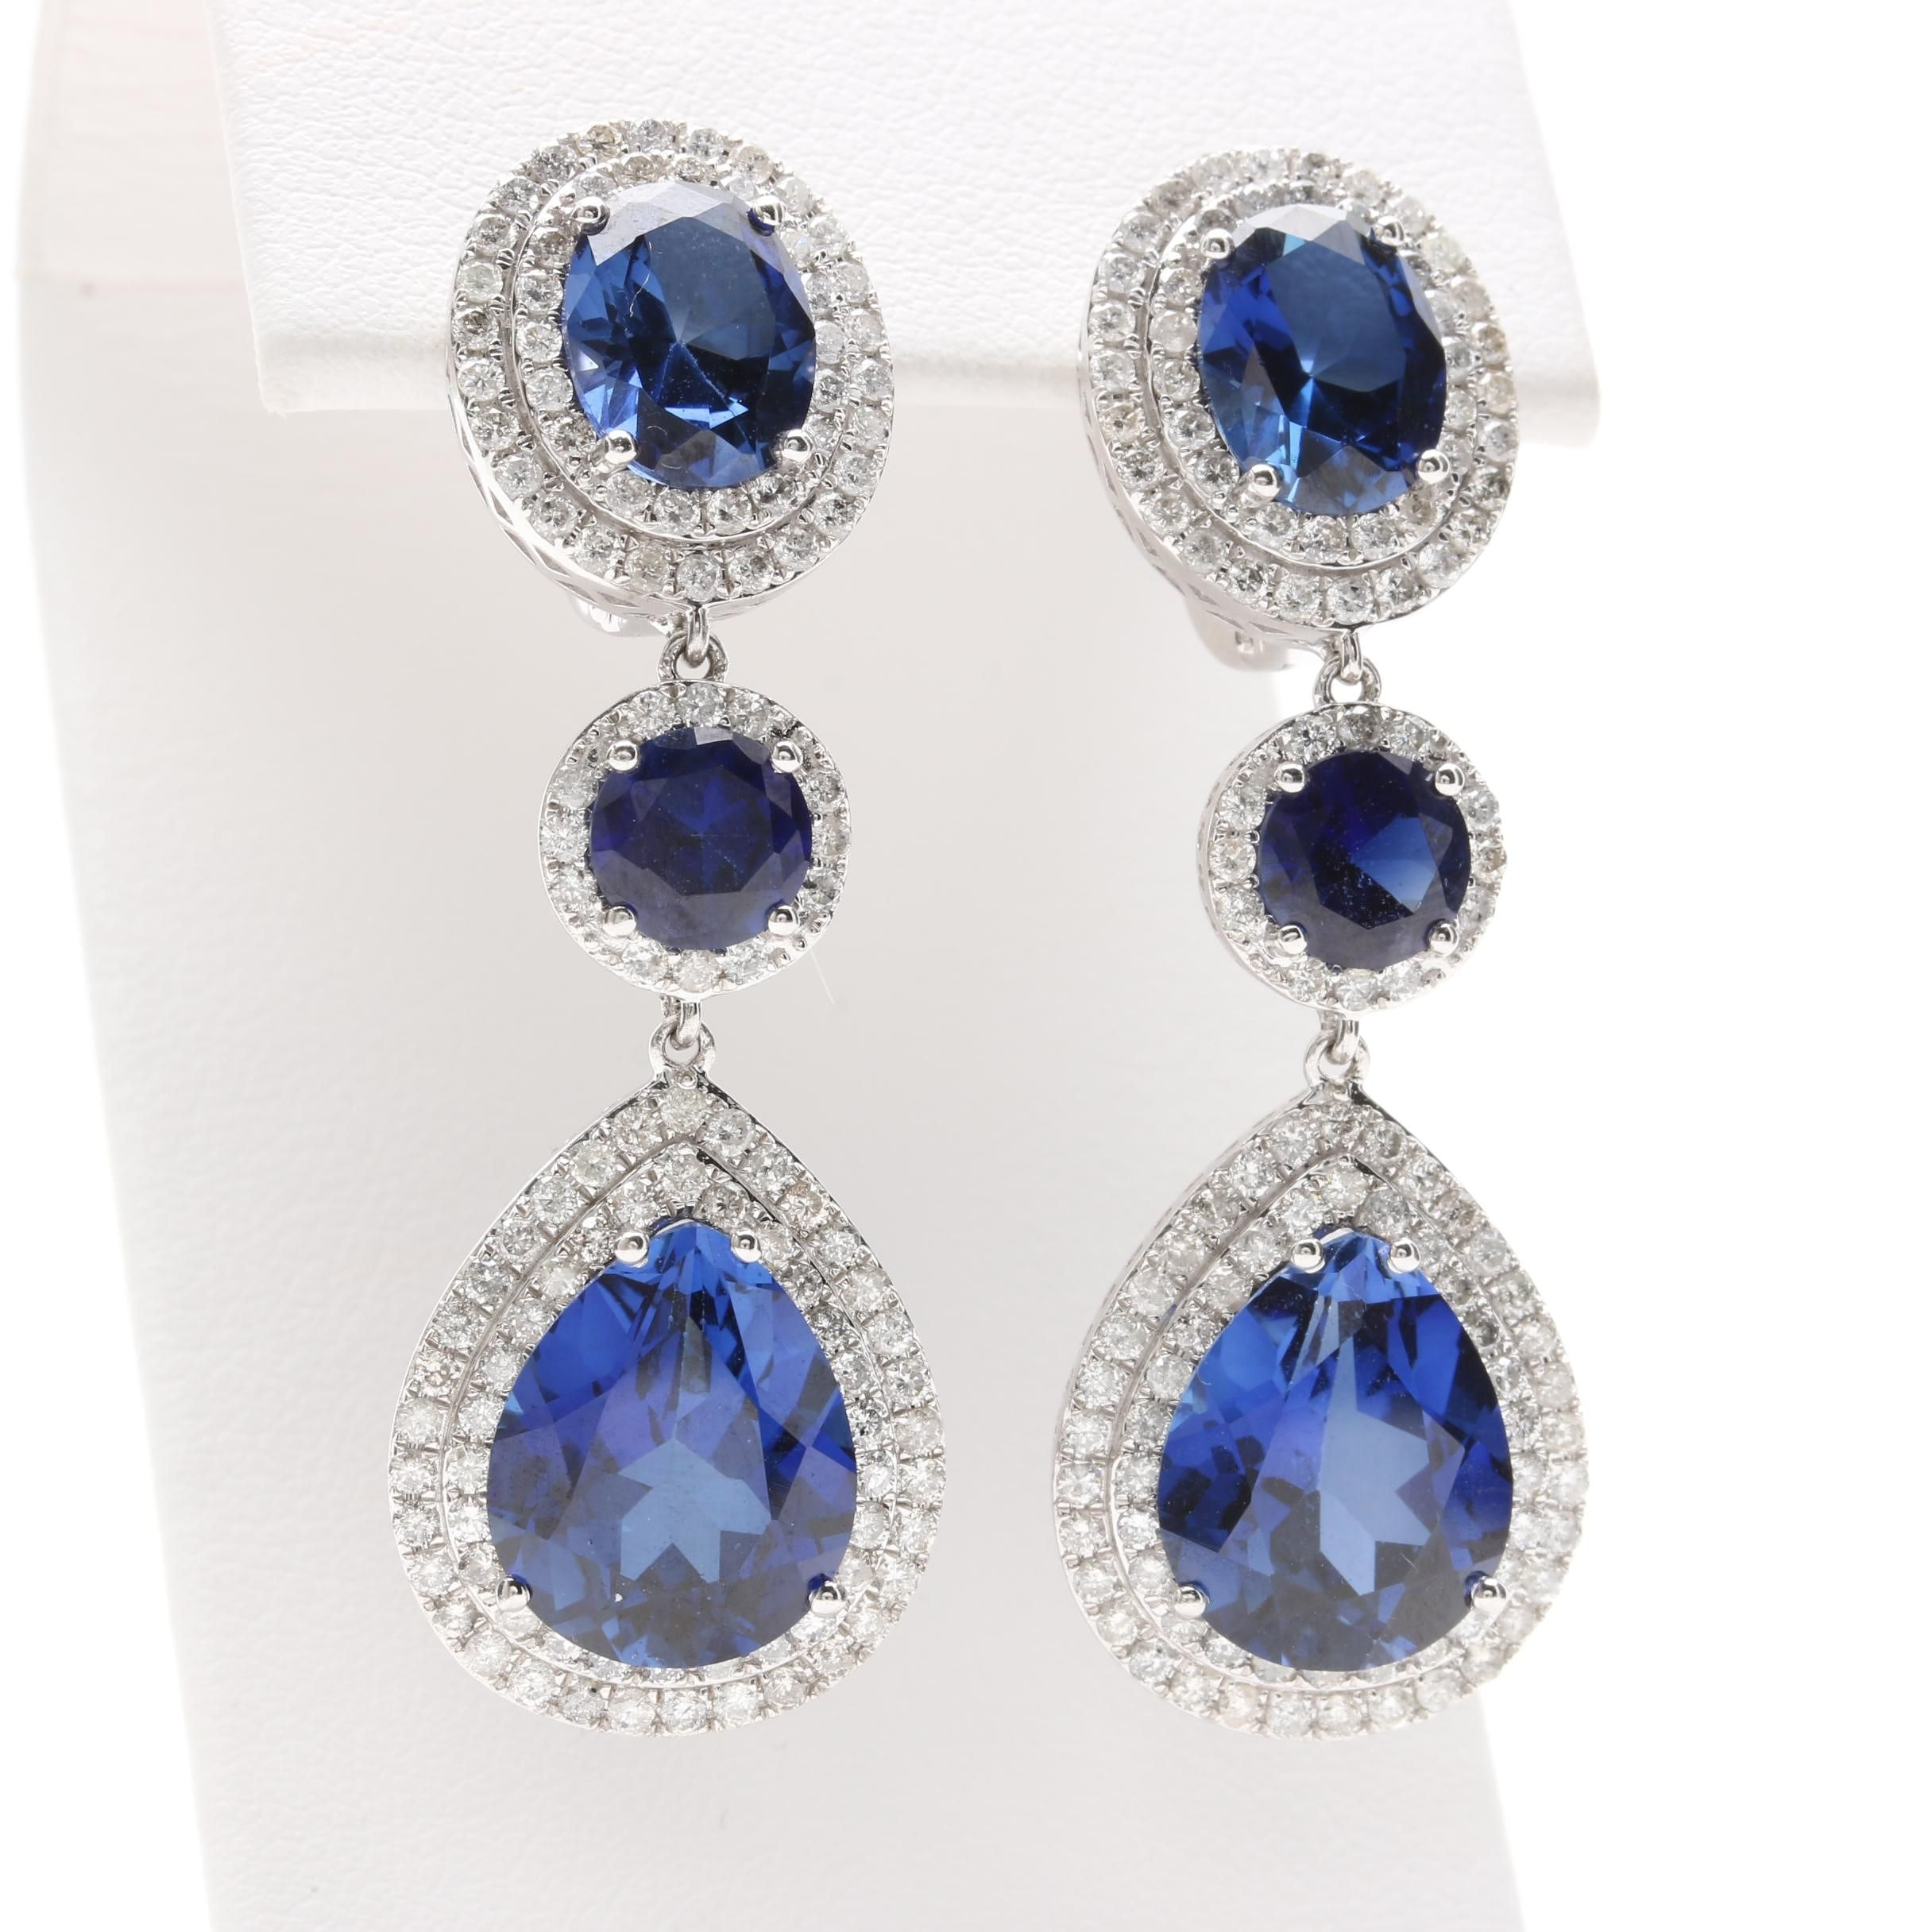 14K White Gold Synthetic Blue Sapphire and 2.01 CTW Diamond Earrings